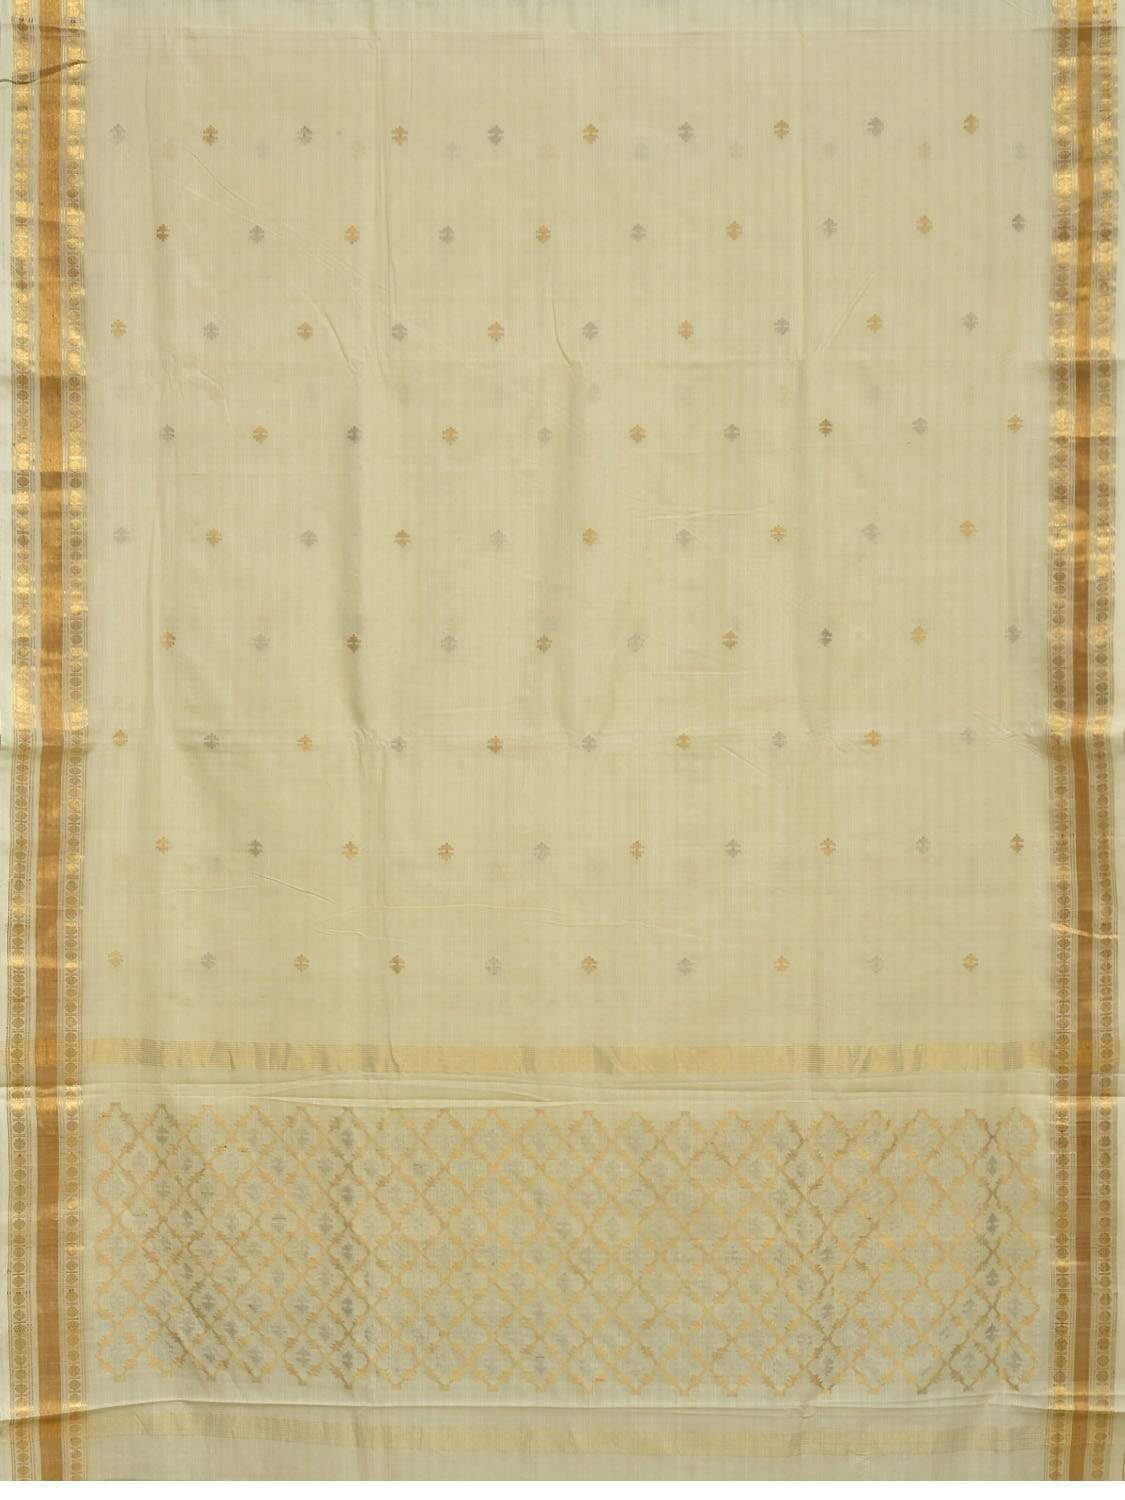 Off White Uppada Cotton Handloom Saree with Jamdani Pallu and Traditional Border Design u1580